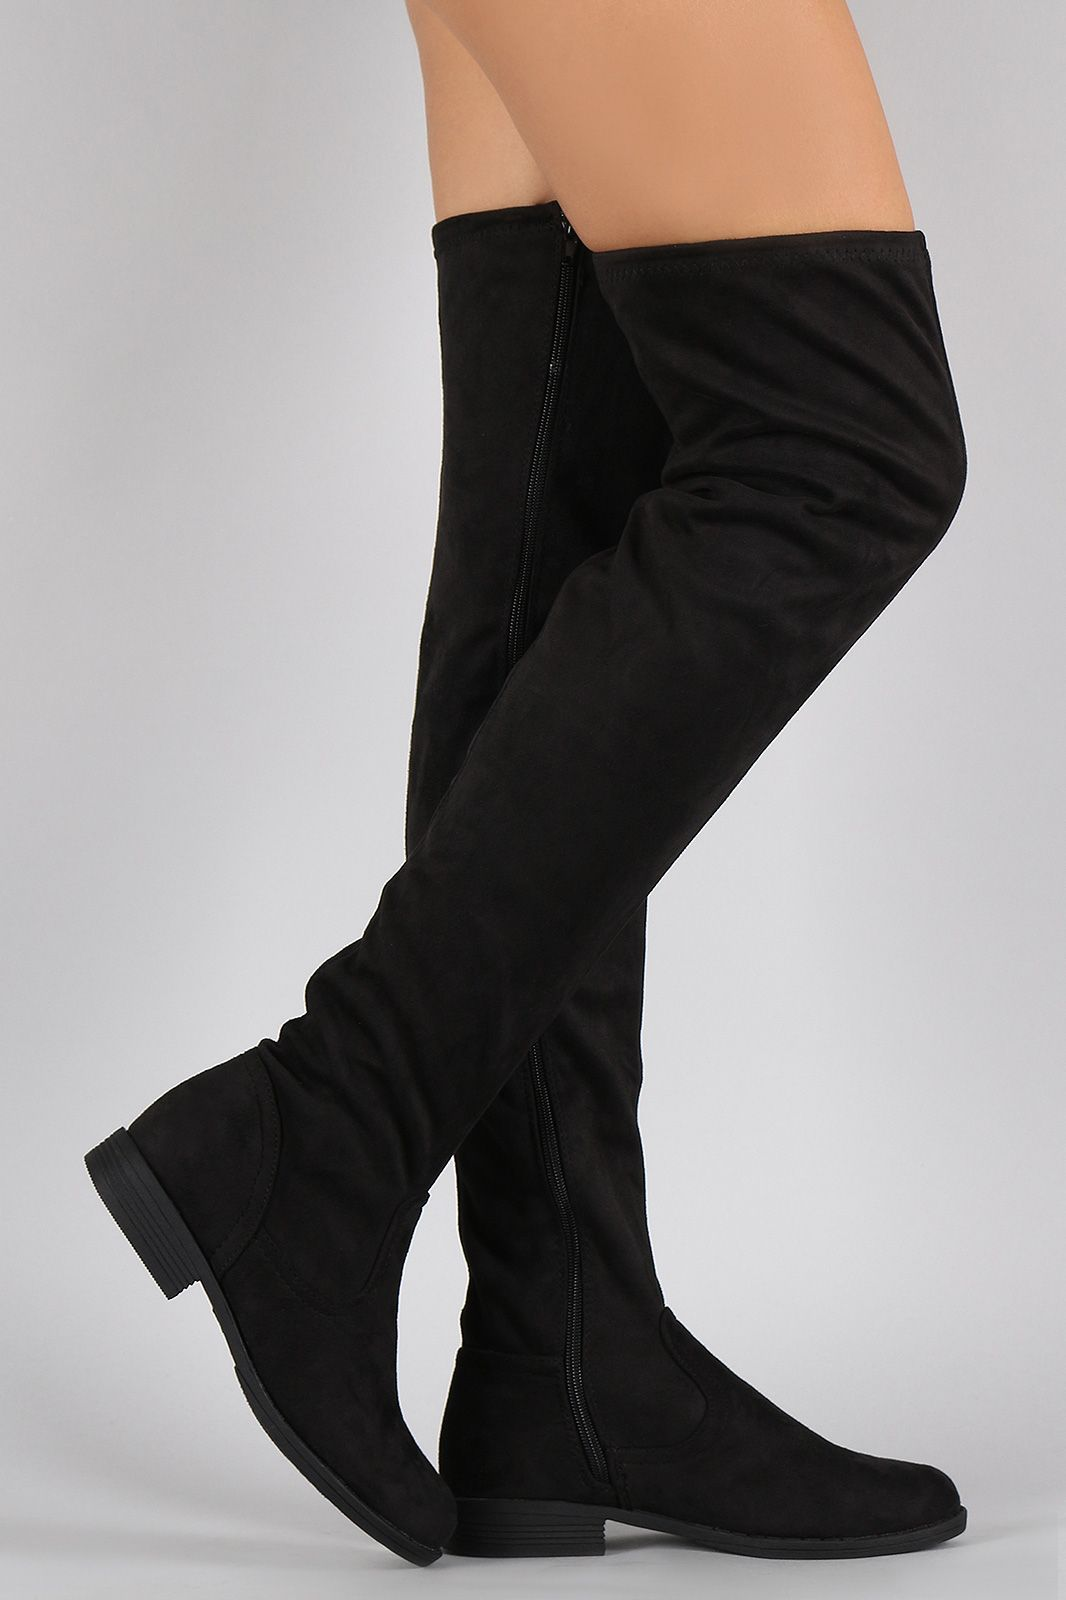 3db0a54bf2a Shop Flat Thigh High Boots. These flat boots are knee high to thigh high  length, depending on personal height. Designed to be fit hugging.